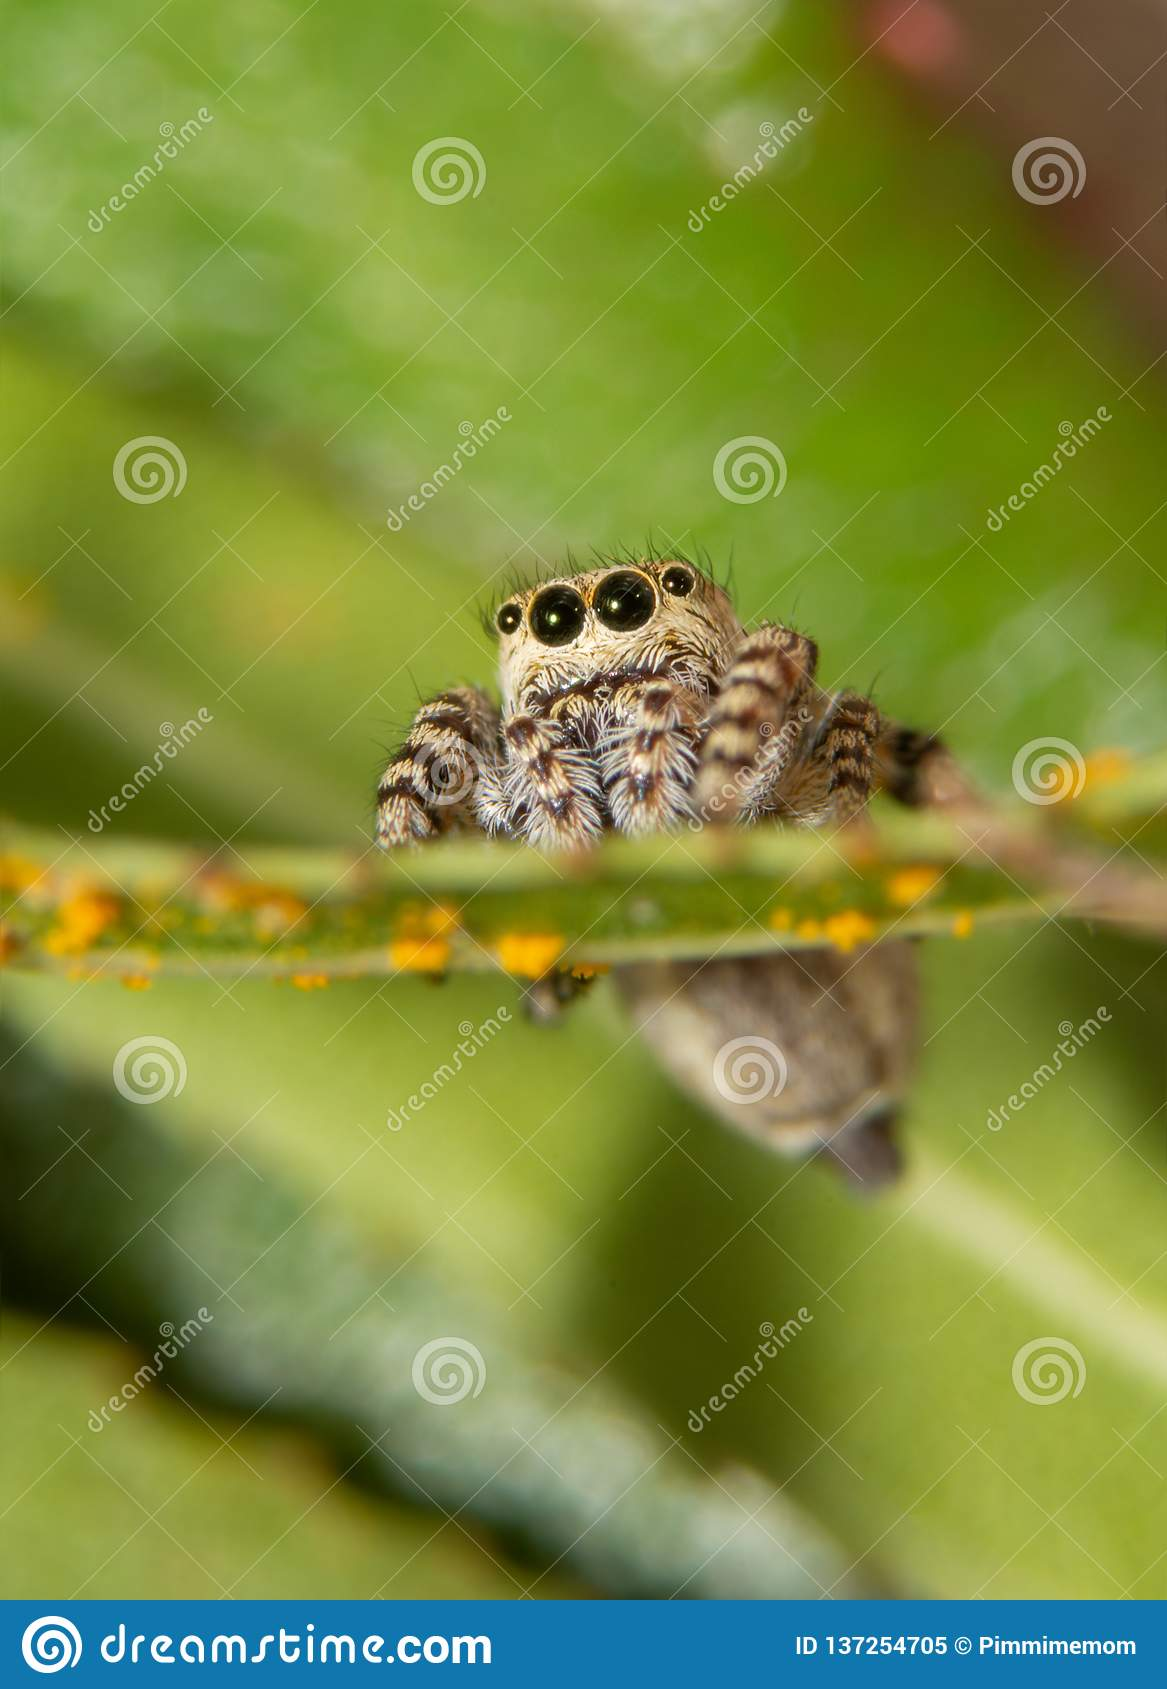 Front view of a tiny Peppered Jumper, Pelegrina galathea spider